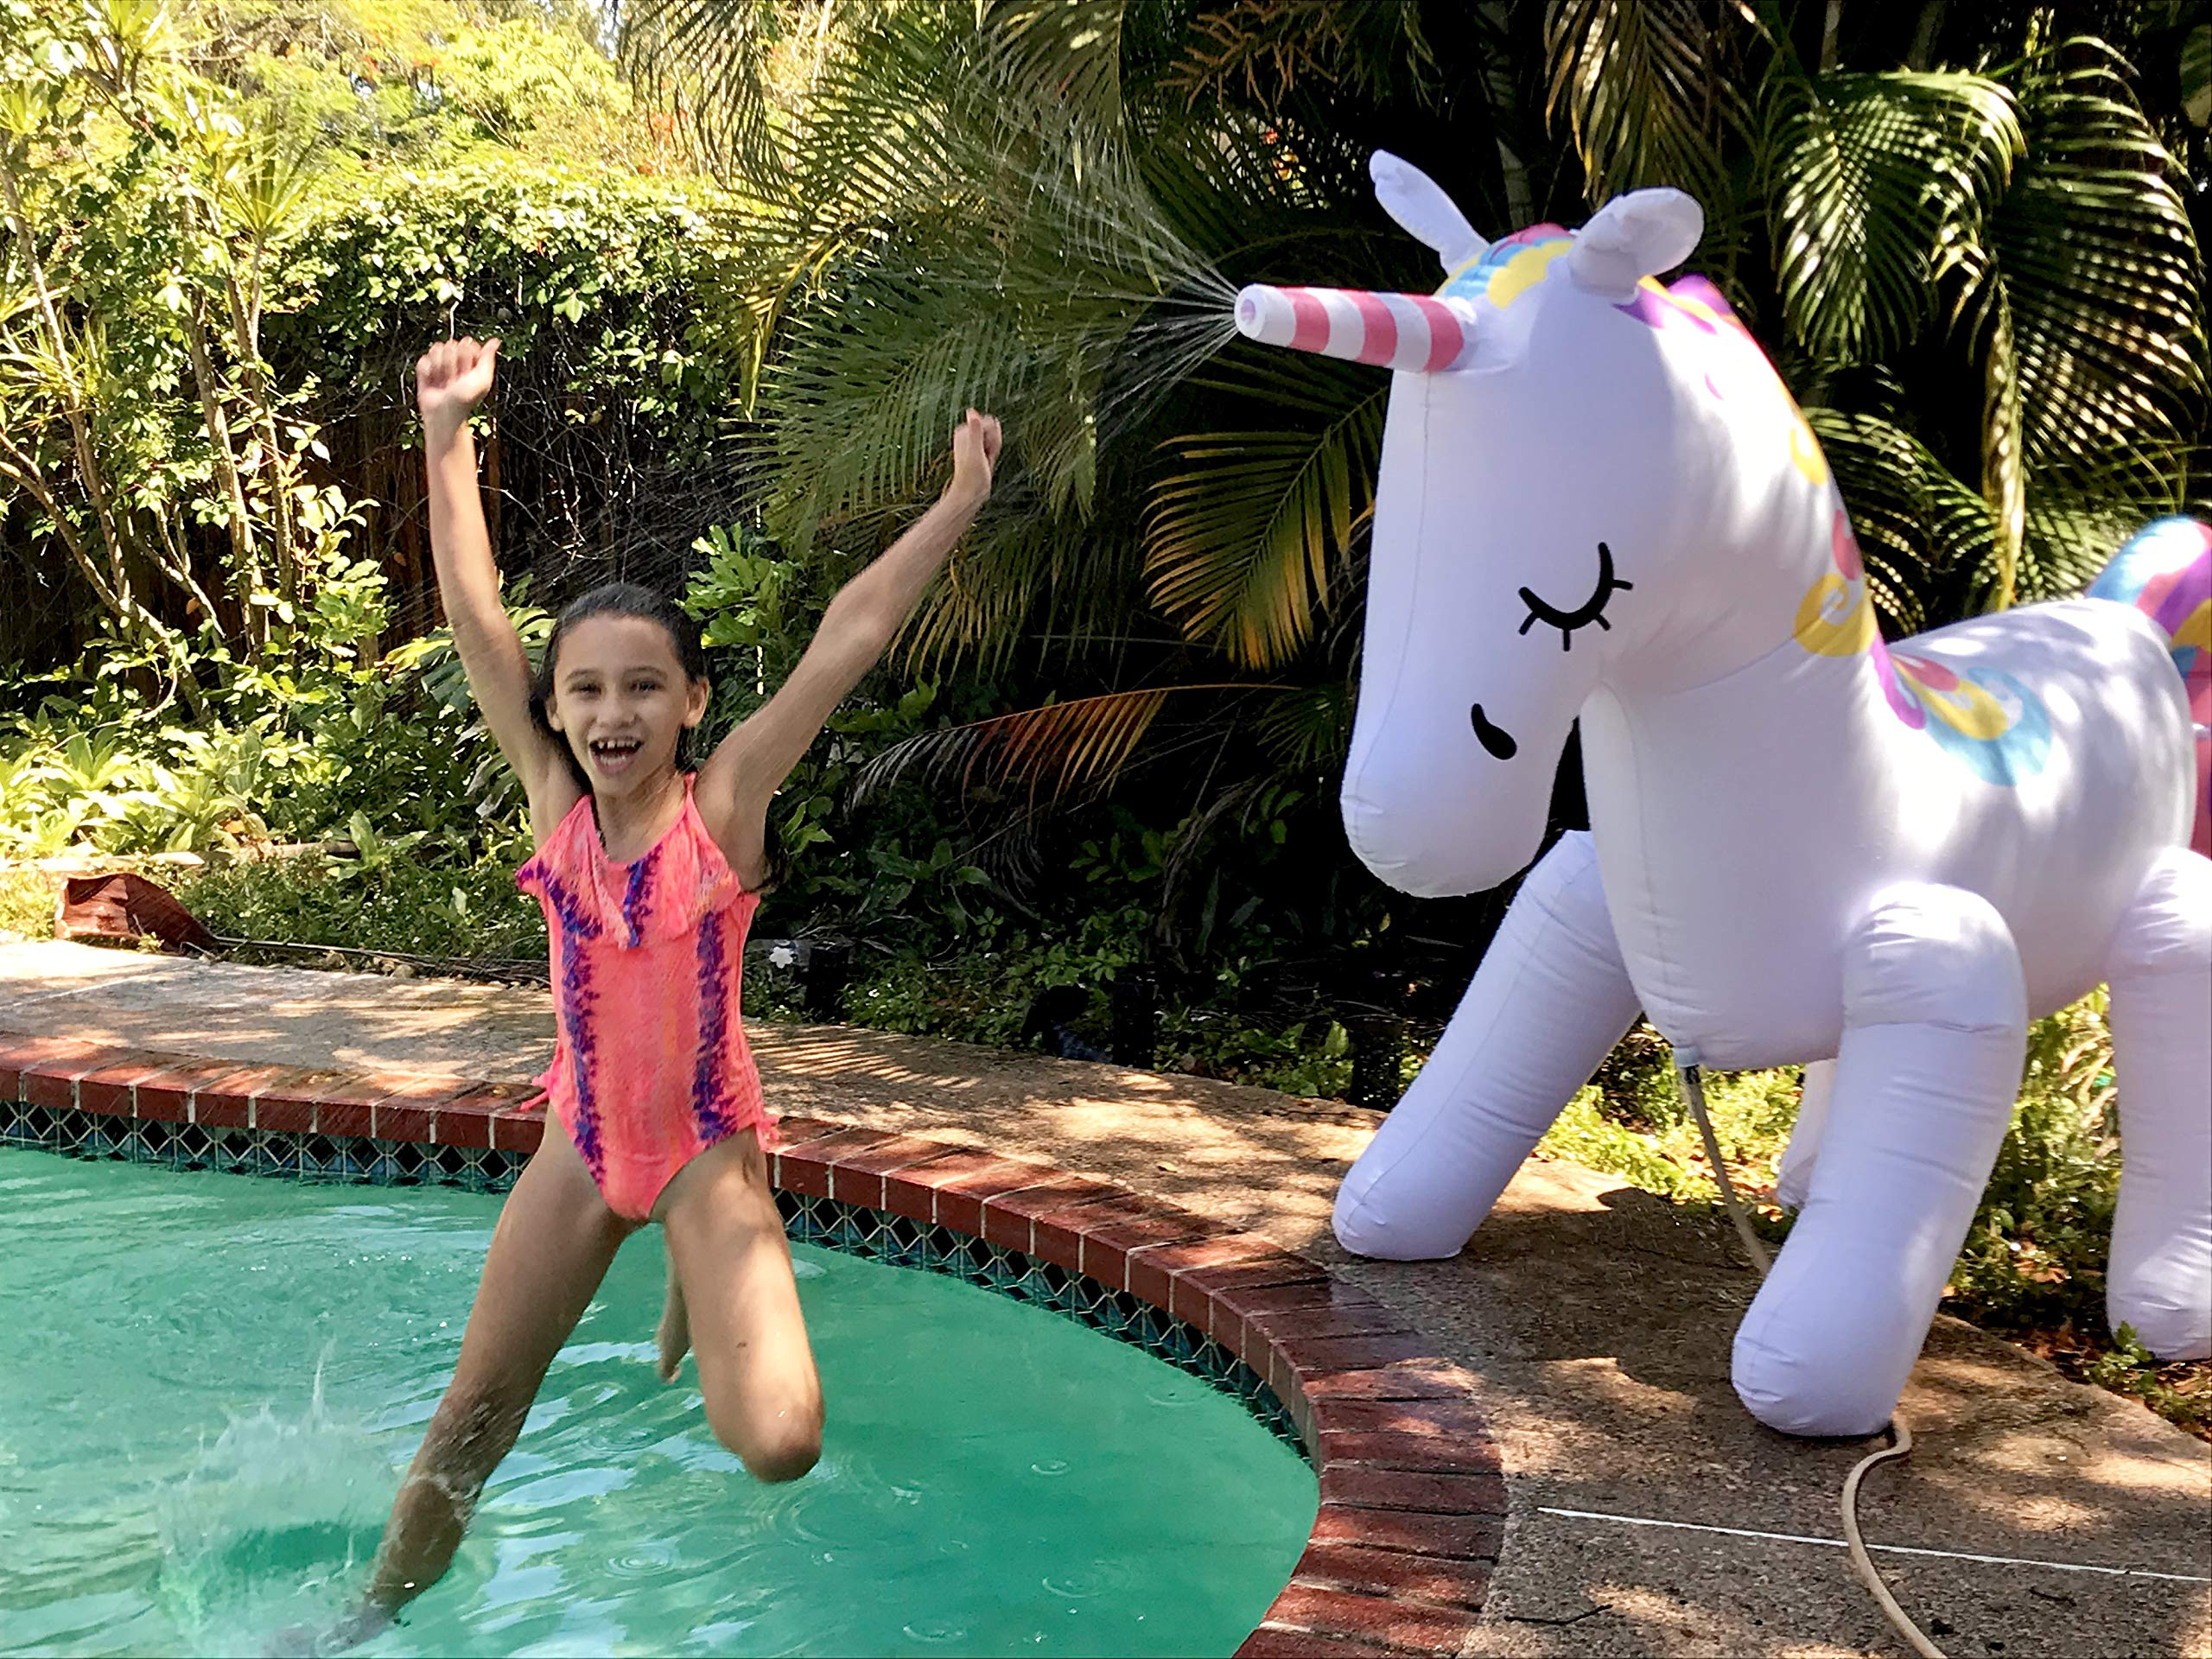 THE ORIGINAL UNICORN SPRINKLER Toy - Giant Inflatable Unicorn Sprinkler for Kids Adults - Great Outdoor Birthday Party… 4